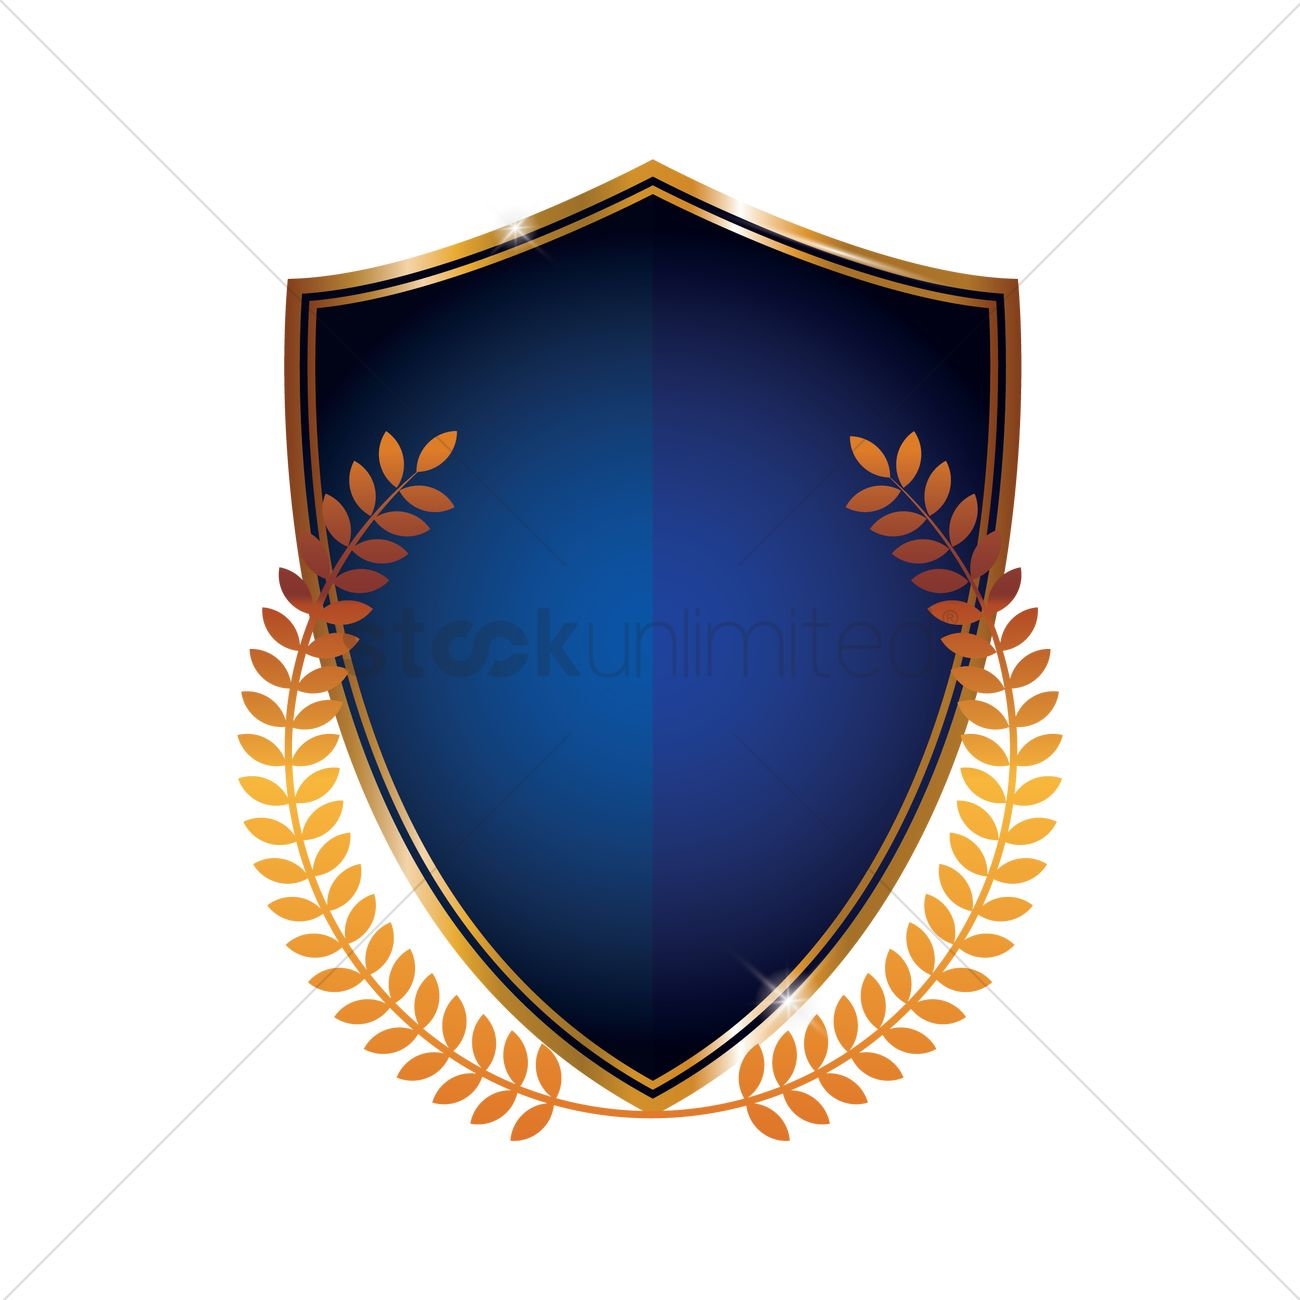 Blue shield emblem vector image 1874312 stockunlimited blue shield emblem vector graphic buycottarizona Image collections